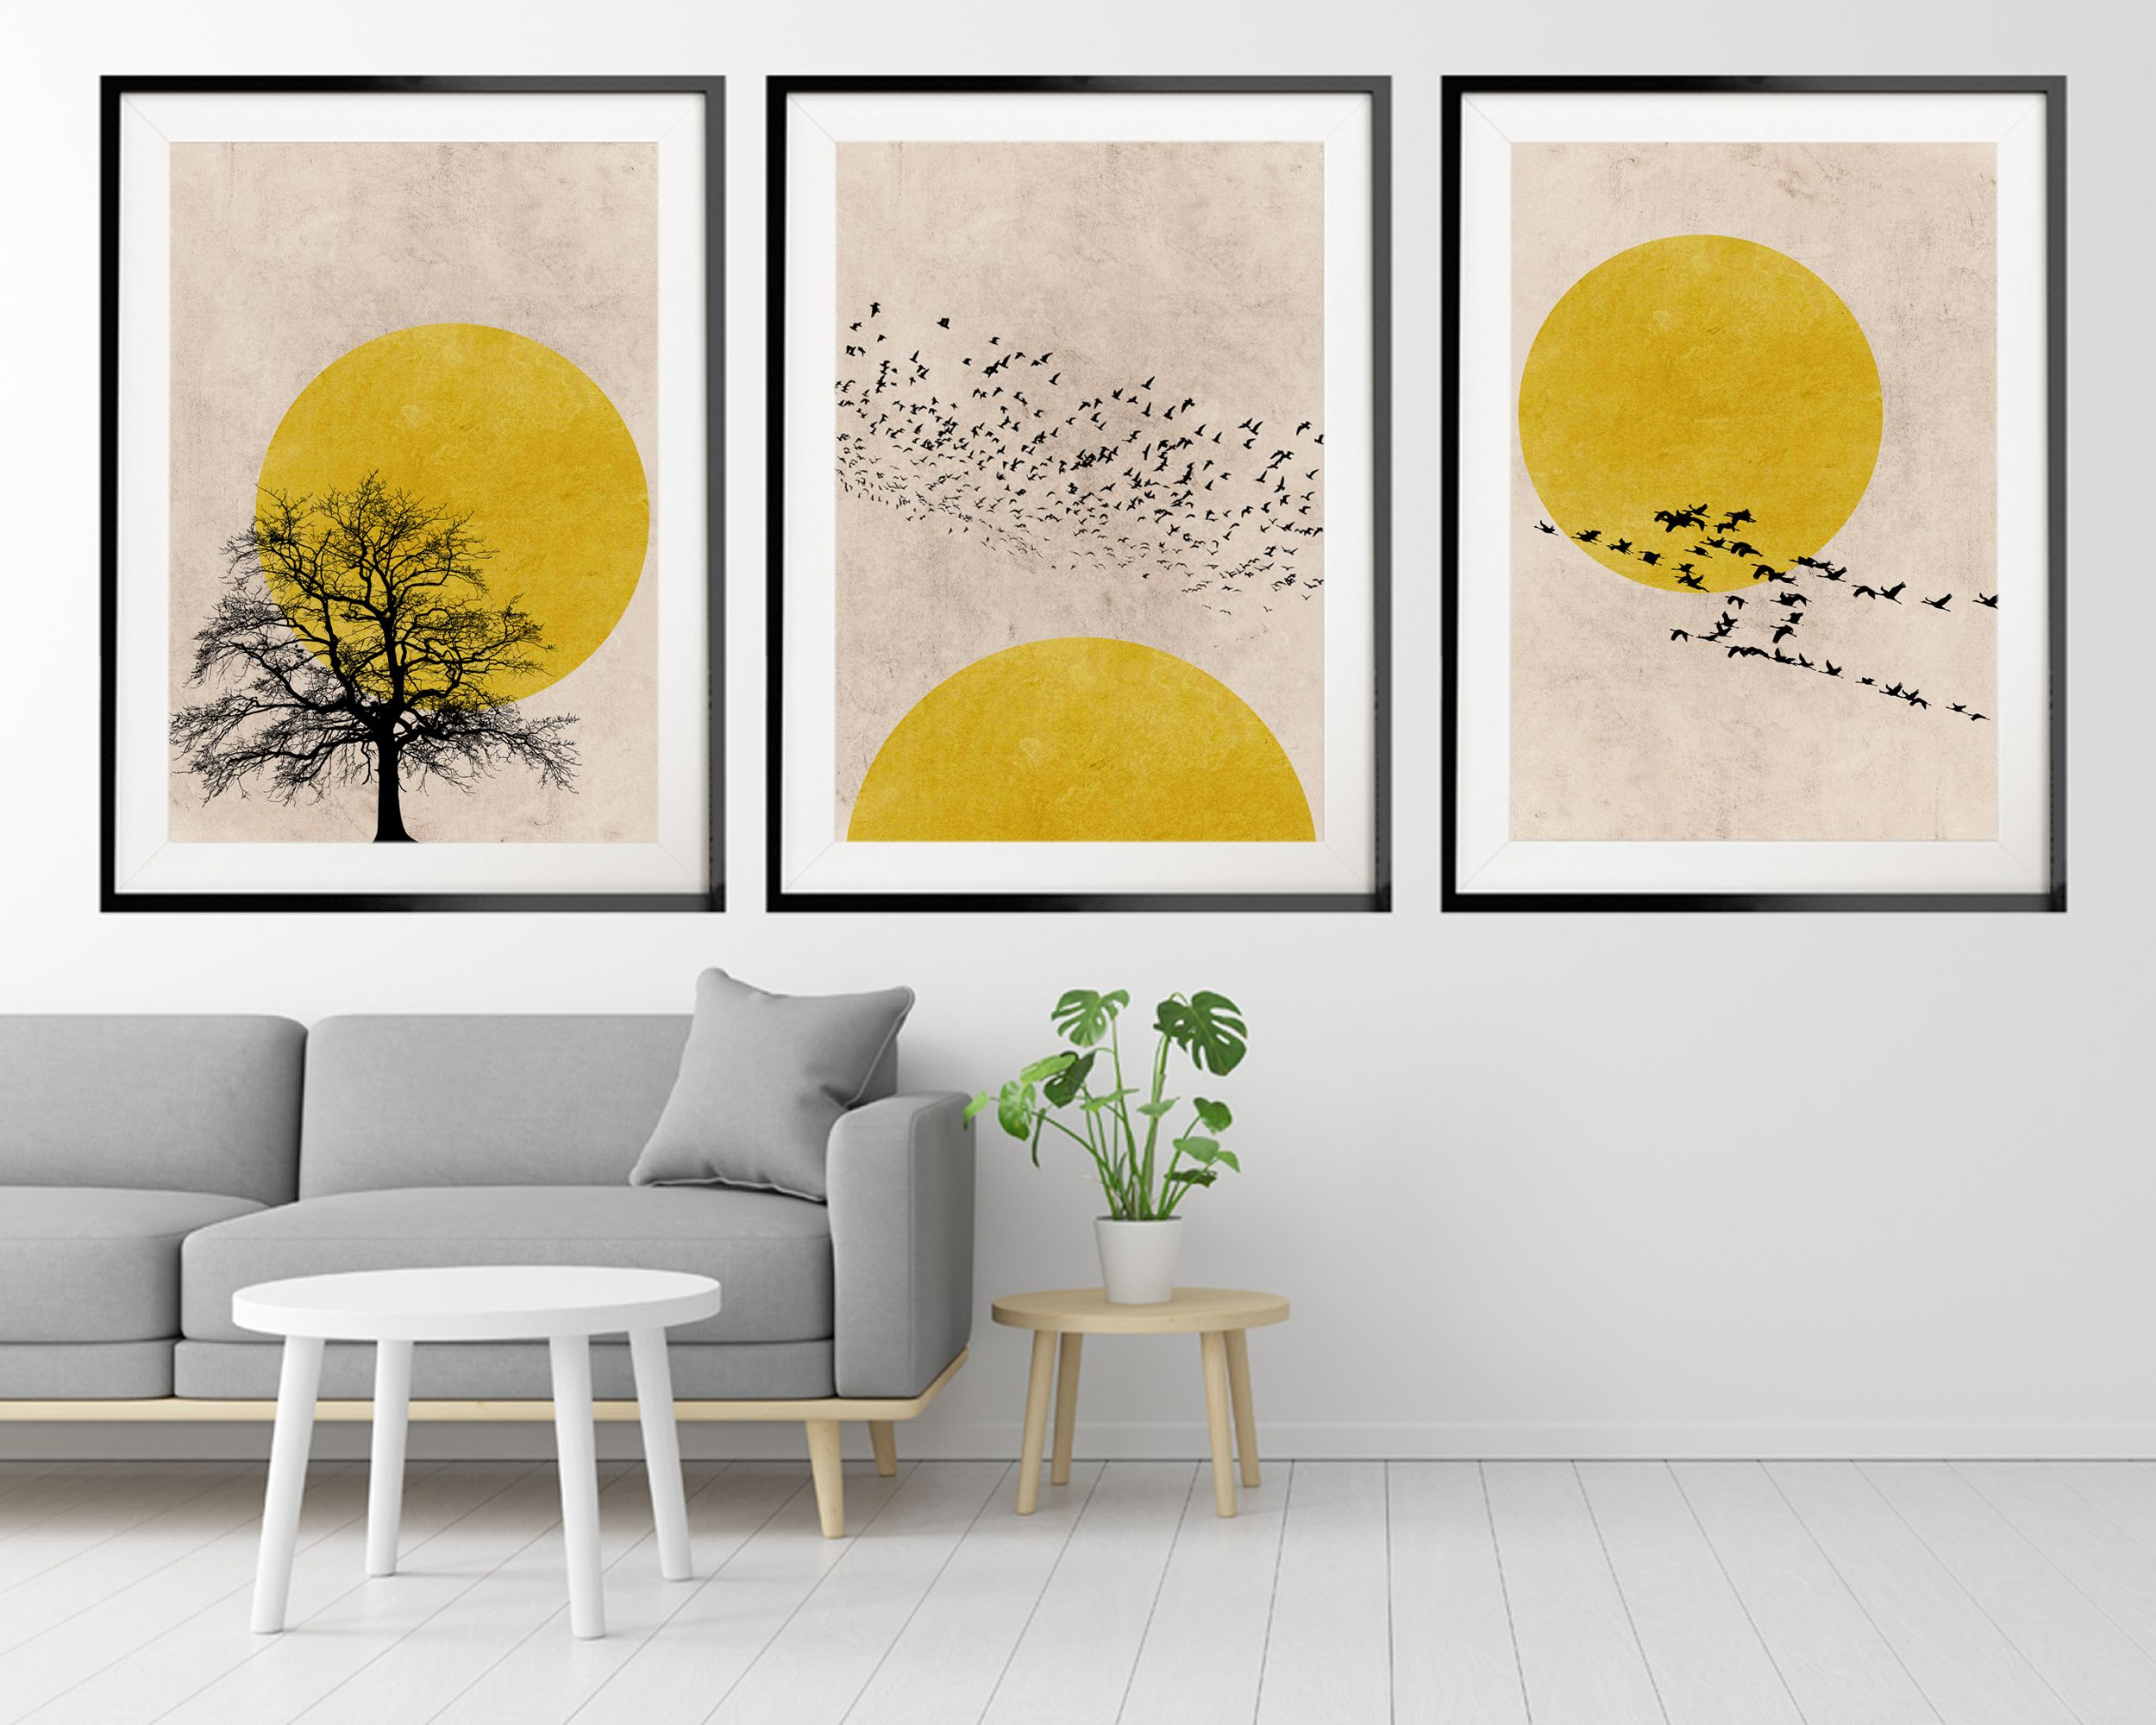 Minimalist Yellow Art Print Set. . . . . . #yellowhomedecor #yellowwallart #silhouetteart #nordicdesign #scandistyle #yellowartprint #printset #printsetof3 #wallart #homedecor #interiordesign #scandinaviandesign #nordicdecor #minimalisthome #artprintset #saffadesigns #wallartset #moderndecor #yellow